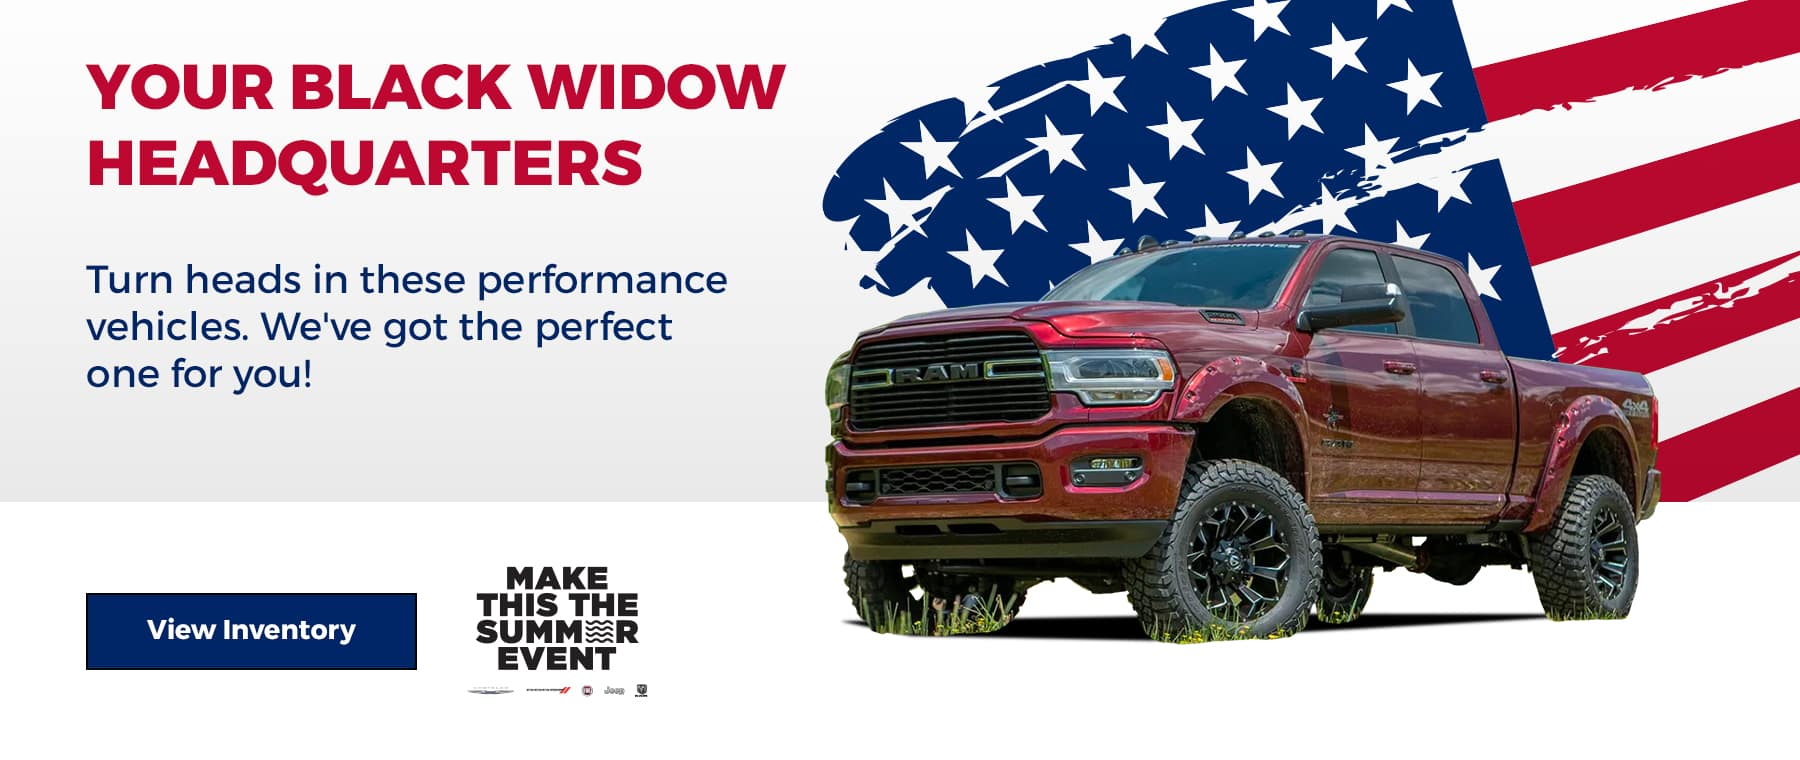 Your Black Widow Headquarters. Turn heads in these performance vehicles. We've got the perfect one for you!